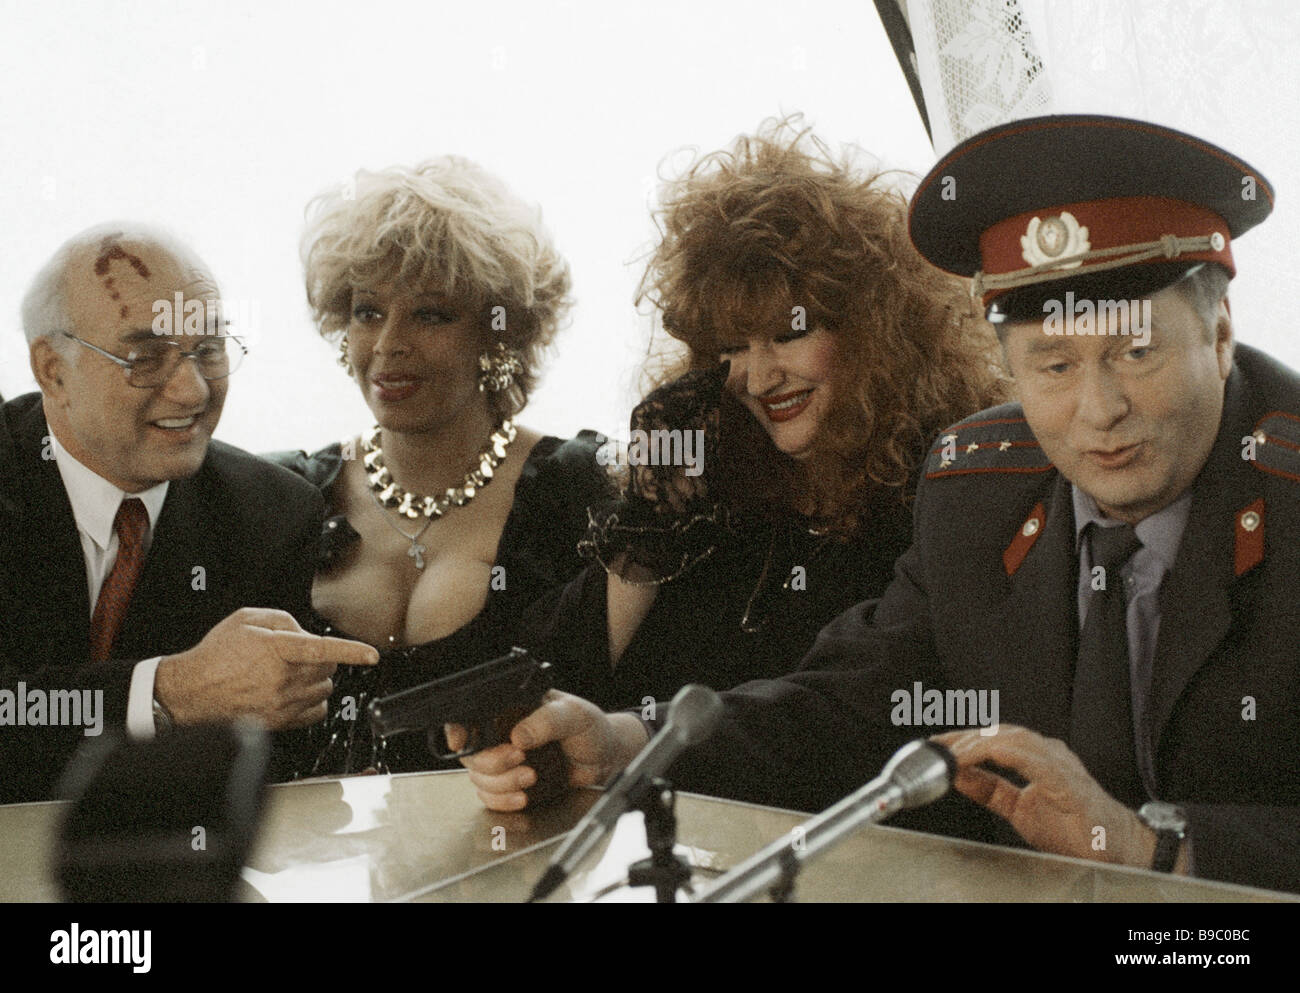 The LDPR leader Vladimir Zhirinovsky and look alike actors of prominent personalities at shooting the film Ship - Stock Image